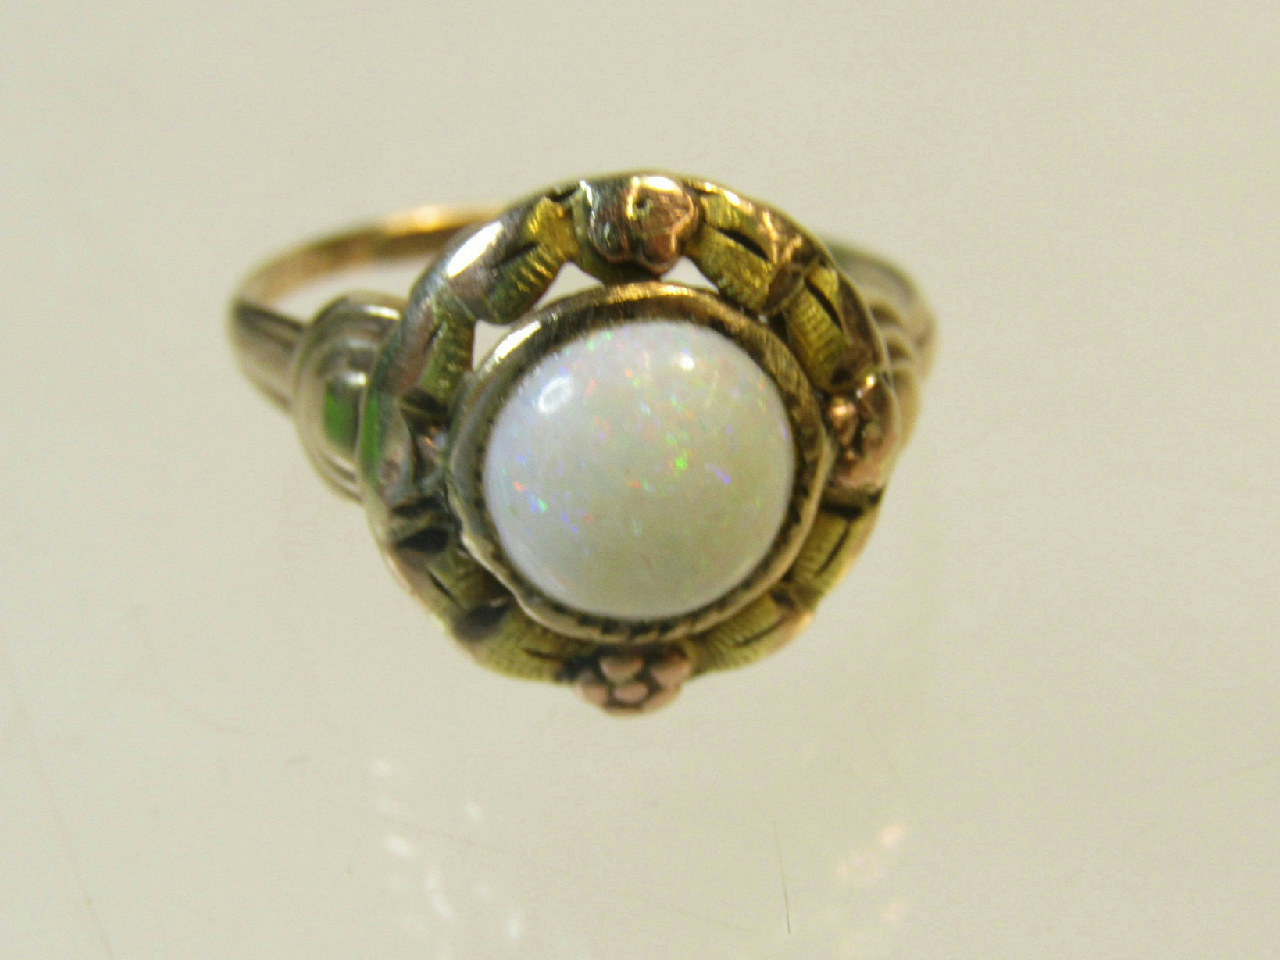 10k yellow gold jewelry ring vintage opal center